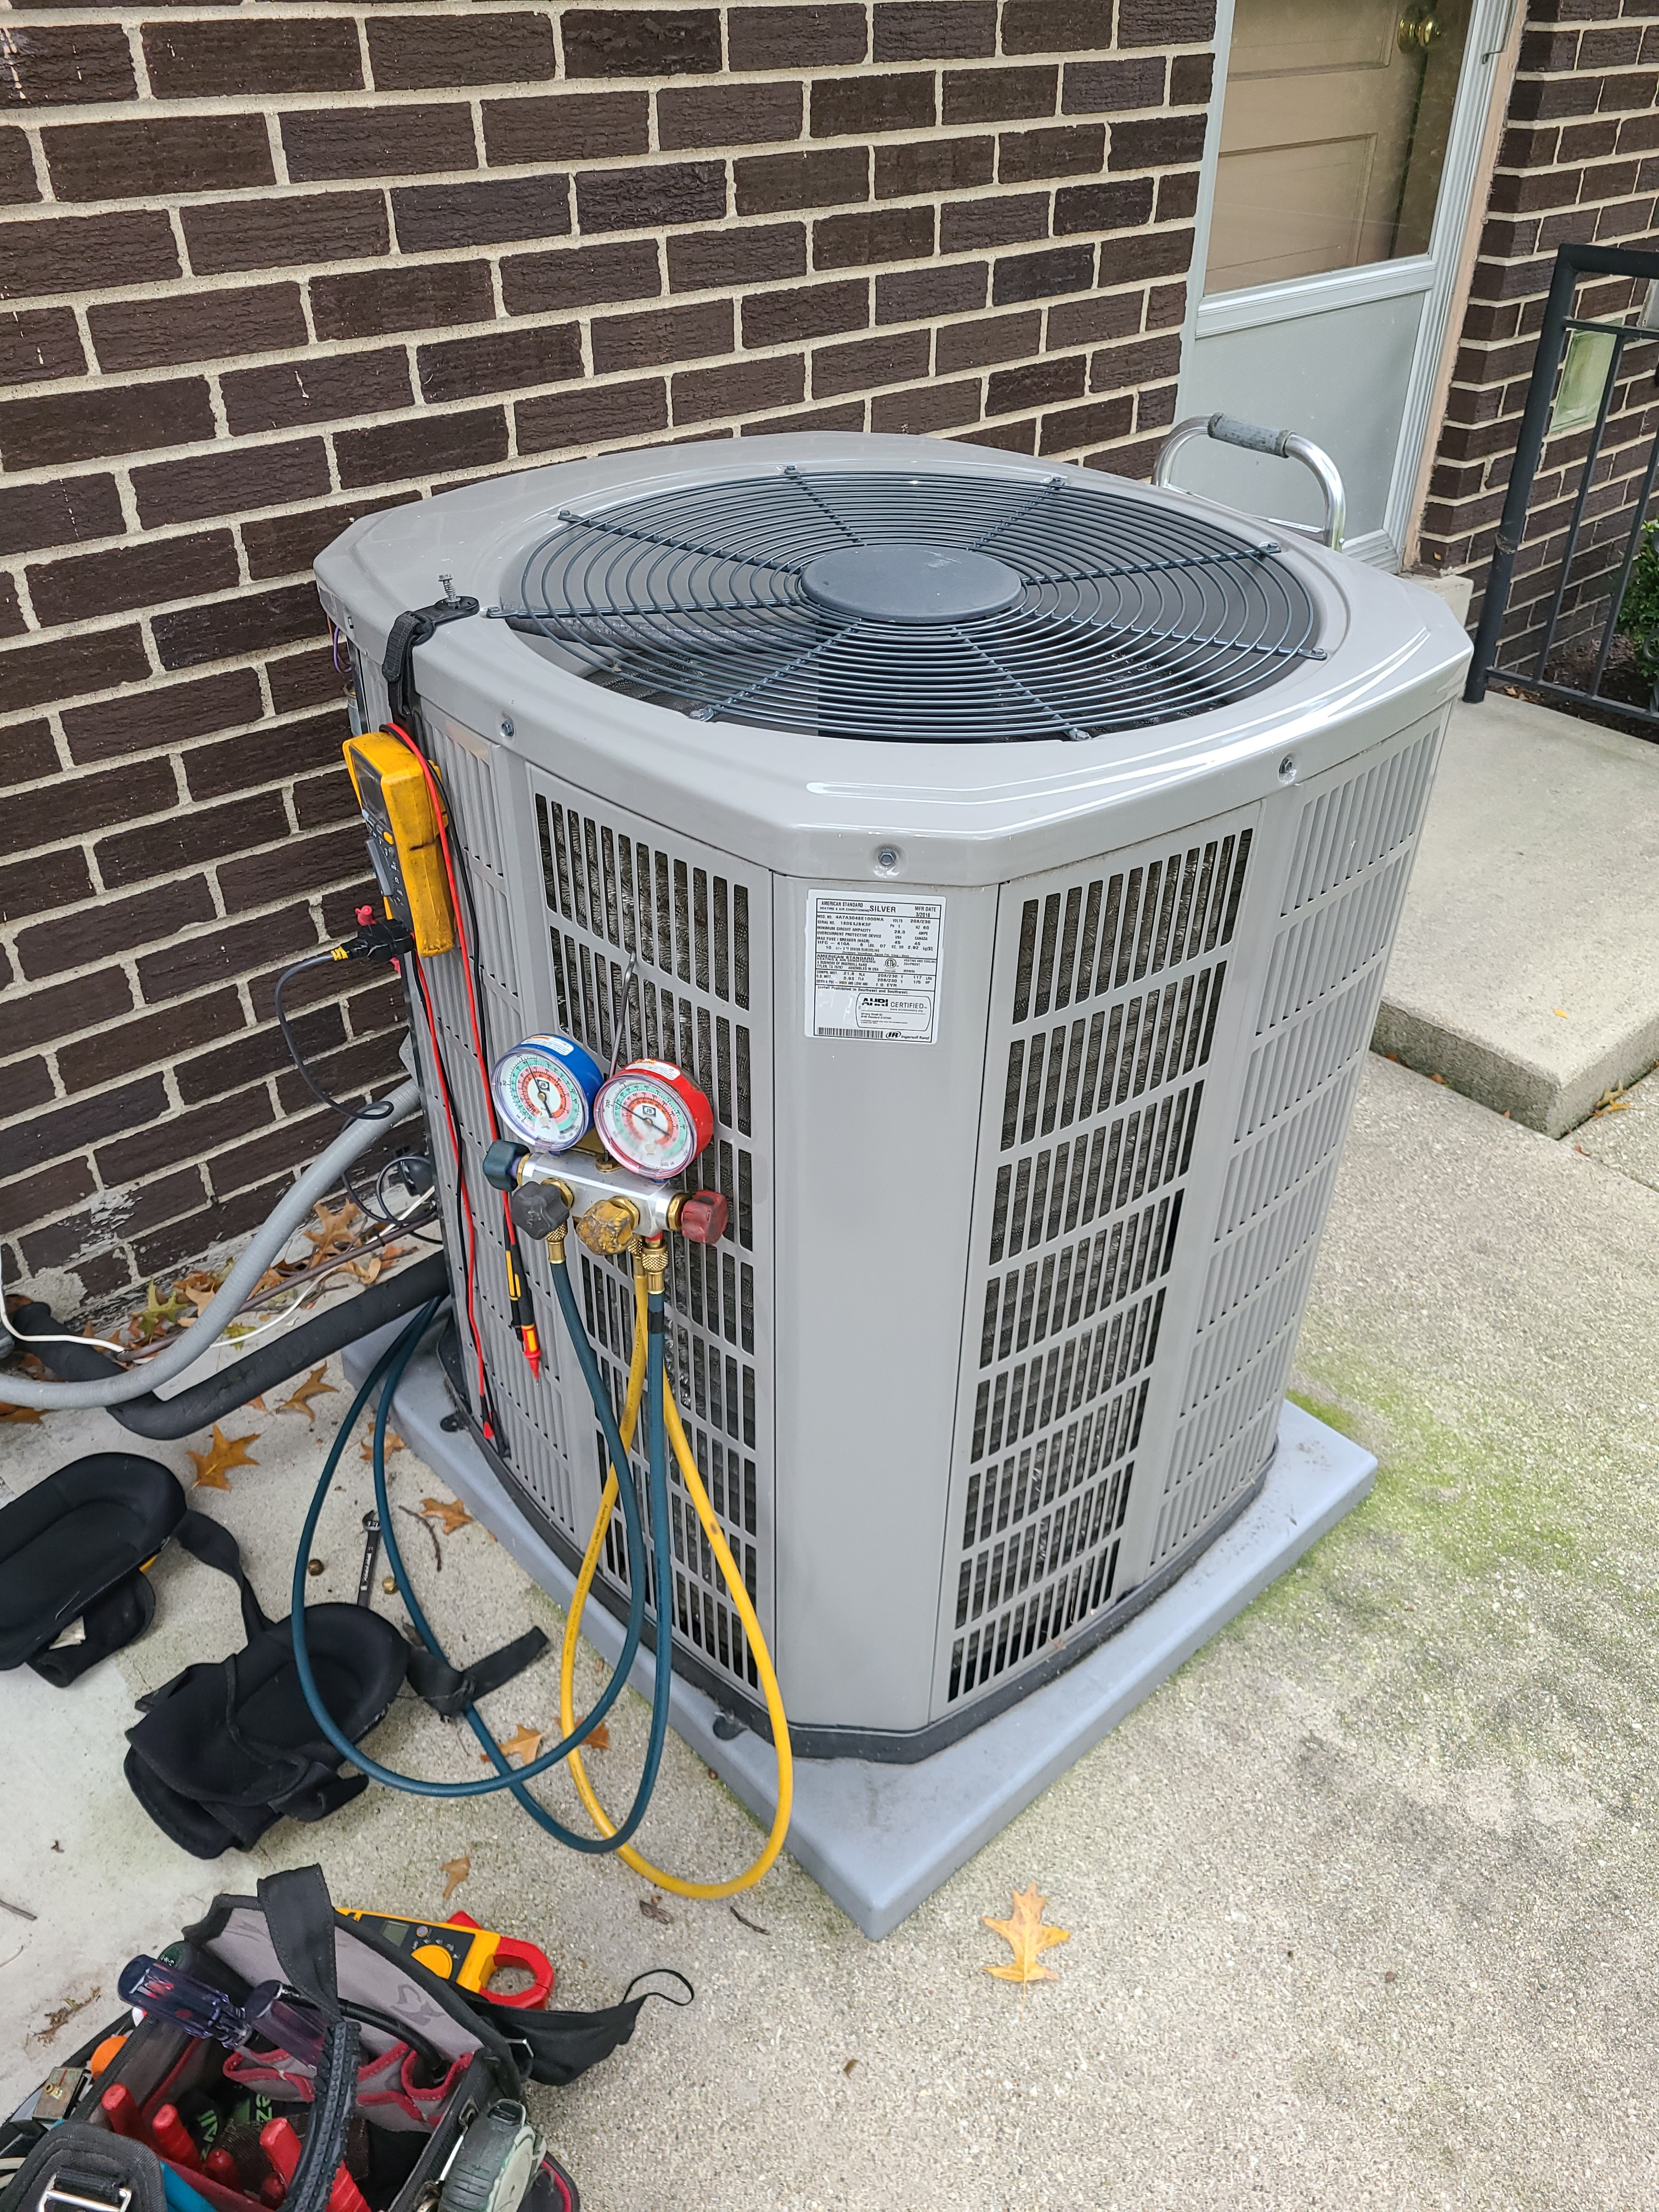 American Standard ac summer clean and check. System tuned up and ready for use.